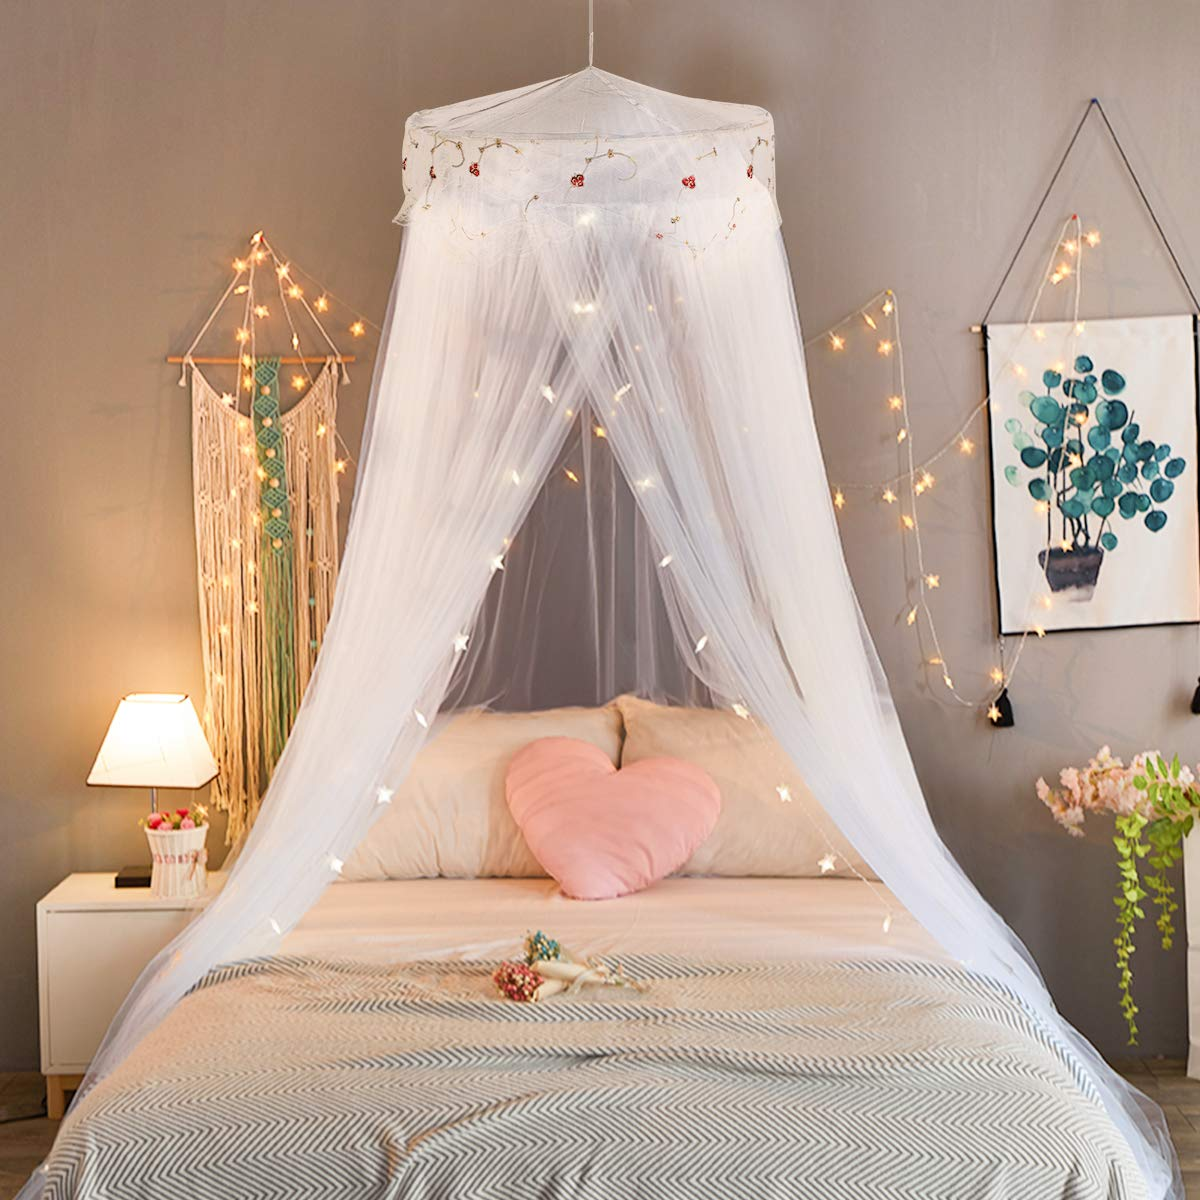 Jeteven Girl Bed Canopy Lace Mosquito Net for Girls Bed, Princess Play Tent Reading Nook Round Lace Dome Curtains Baby Kids Games House-White